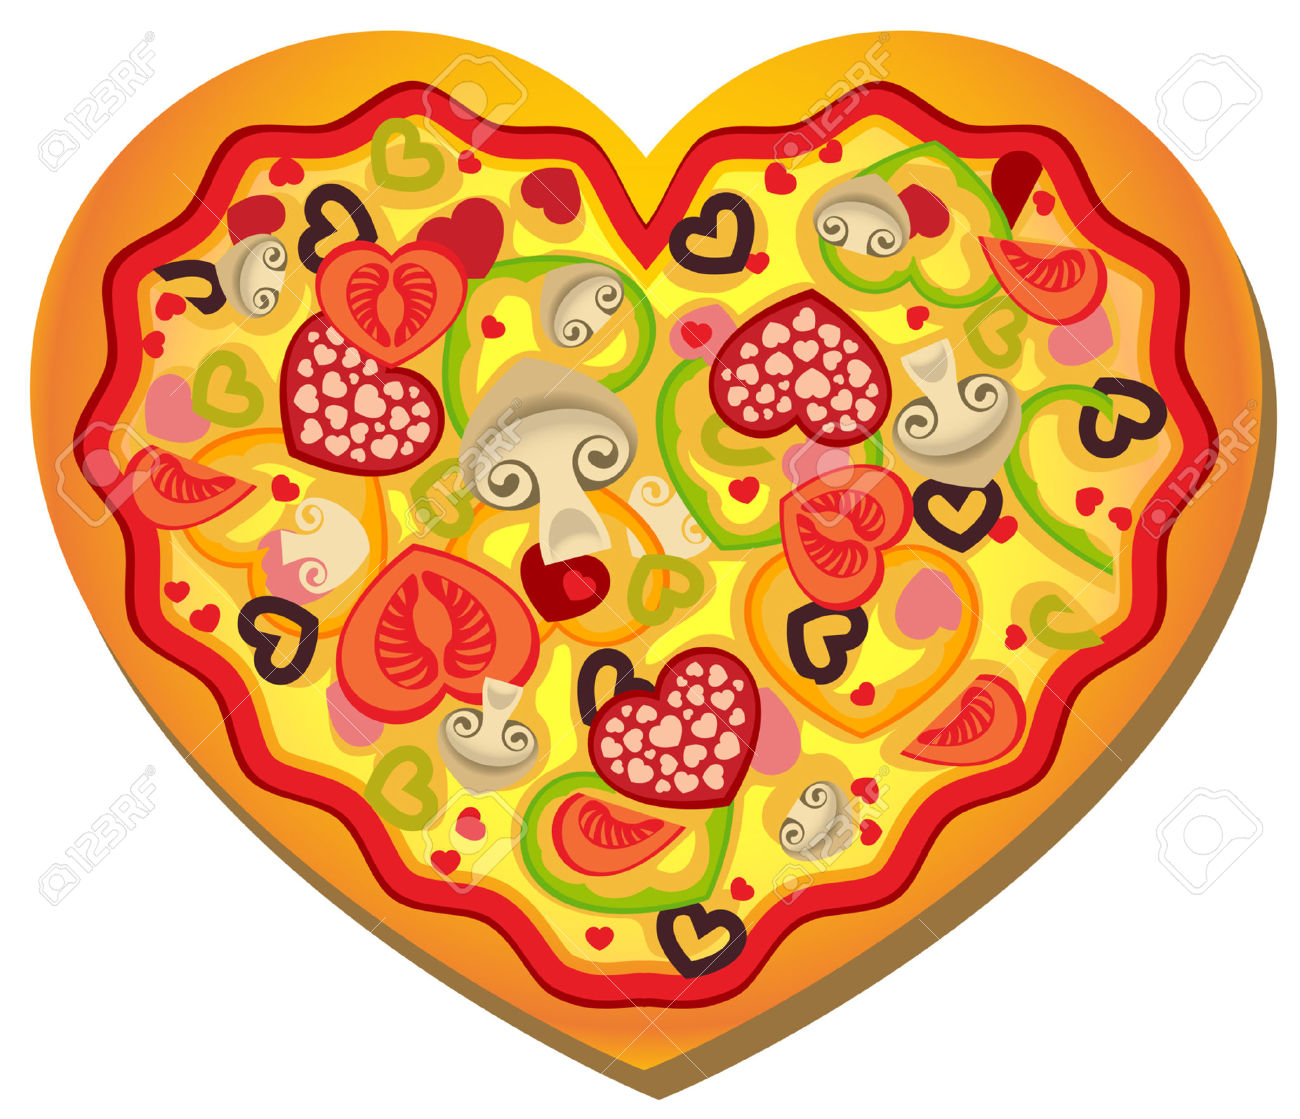 Alfa Img Showing Gt Valentine Heart Clip Art Pizza